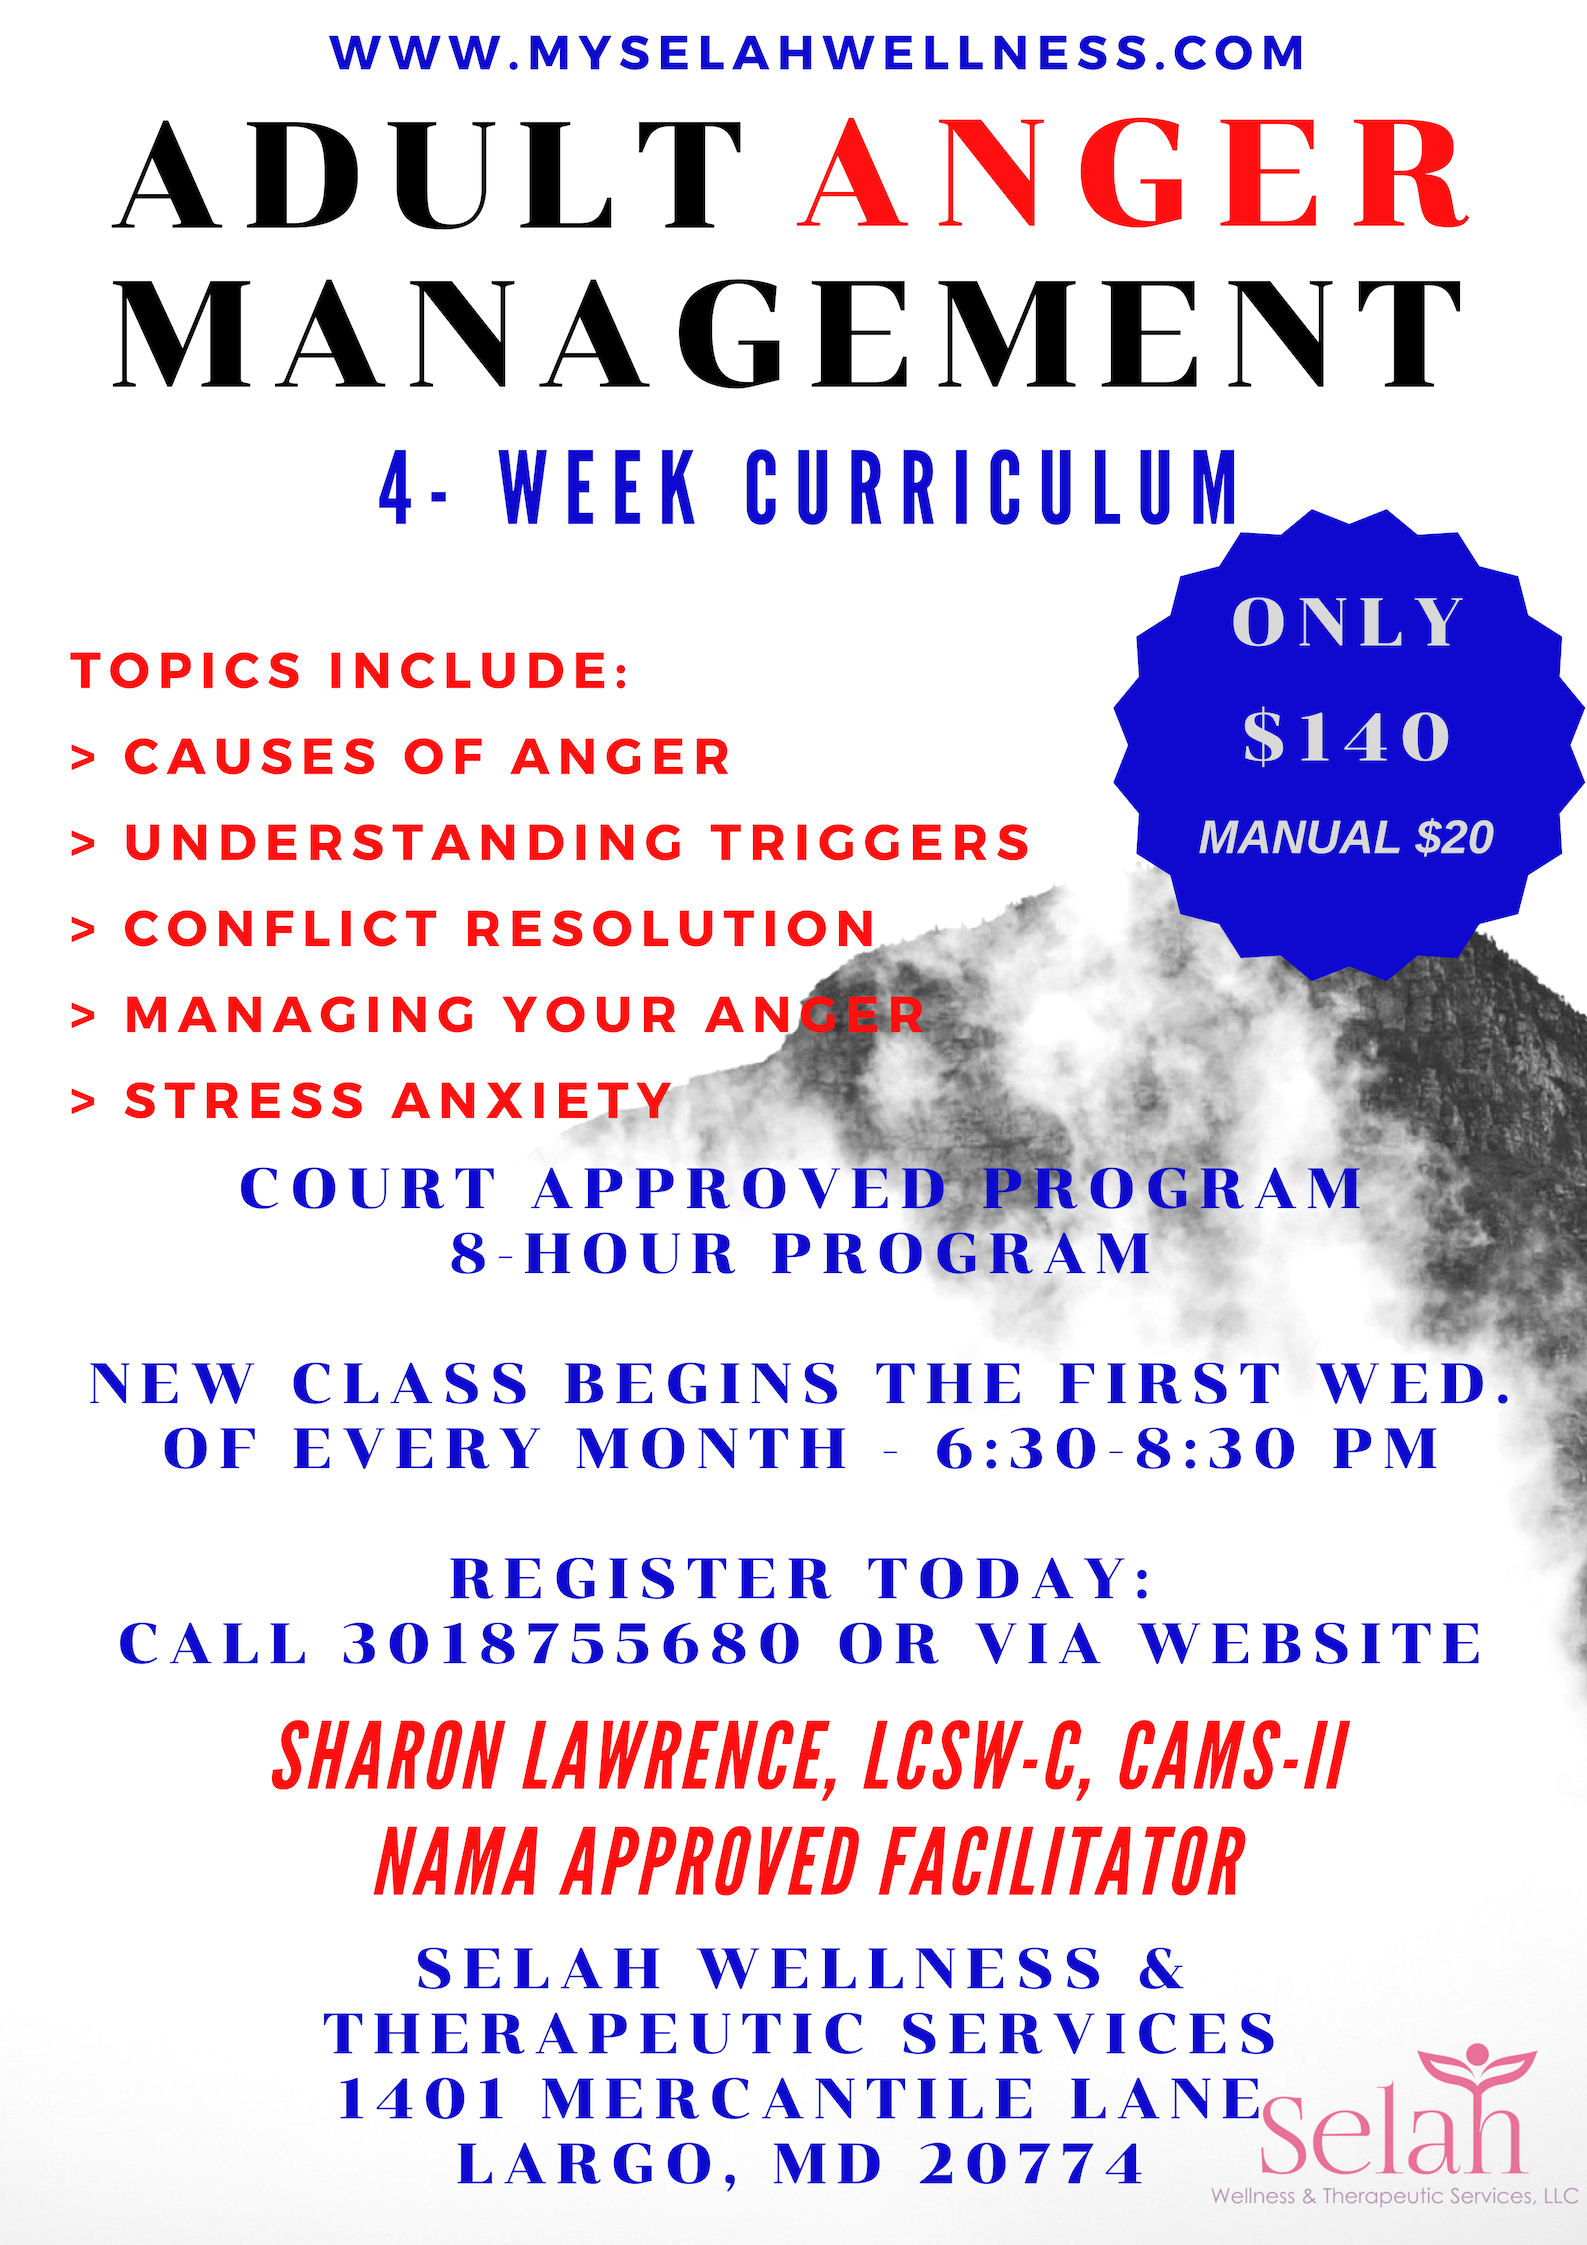 ADULTAnger Management Group - No Classes: July & August 2019Next Session begins: September 4, 2019Please call (301) 875-5680 or email Admin@myselahwellness.com for more informationNo Children Allowed.Payments for Group and Manual is Non-Refundable.Register Here: www.myselahwellness.com/shop/anger